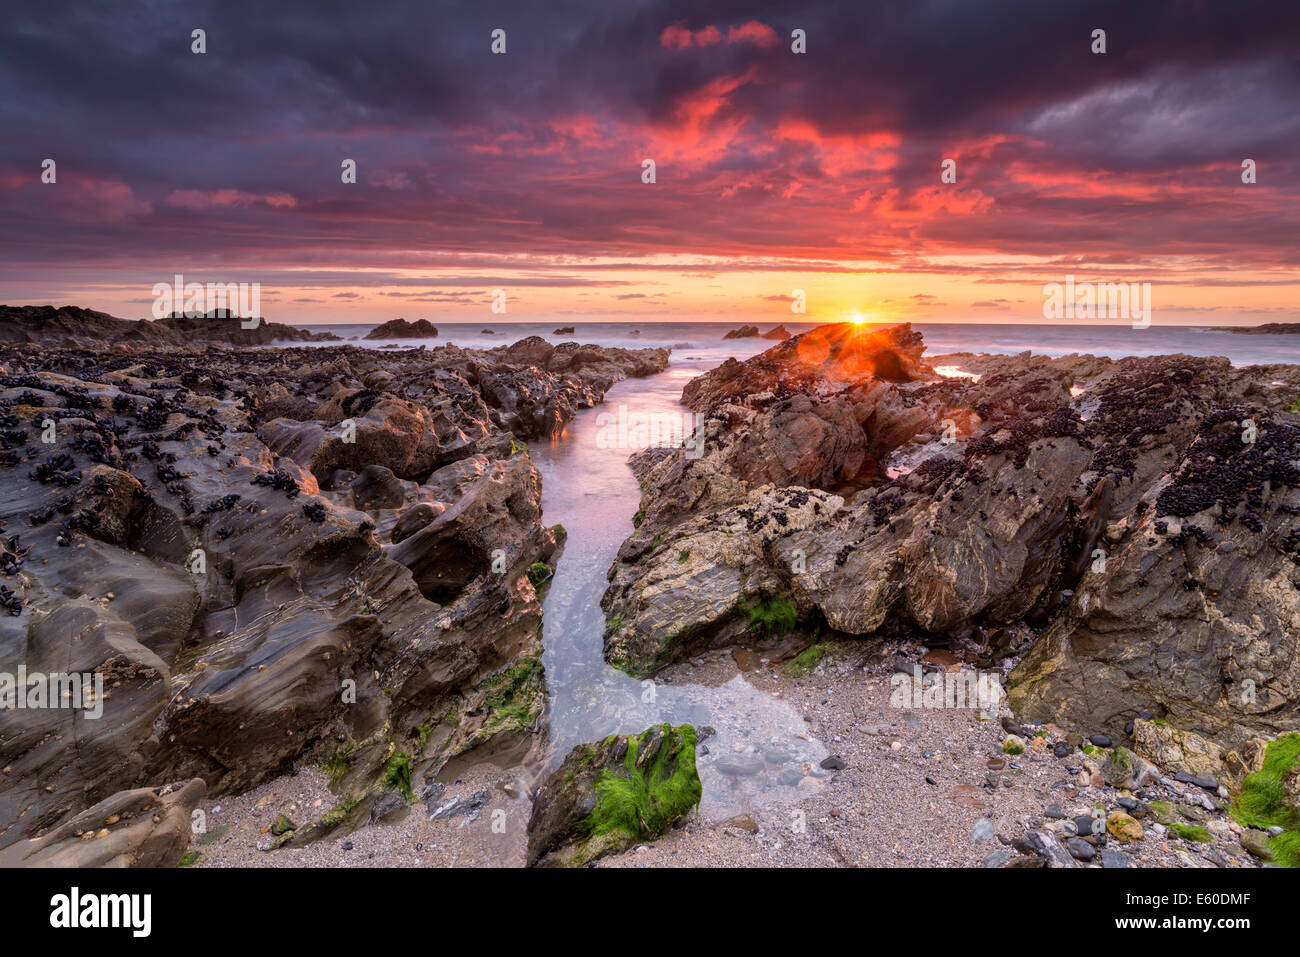 Dramatic fiery sunset on Little Fistral beach at Newquay in Cornwall - Stock Image